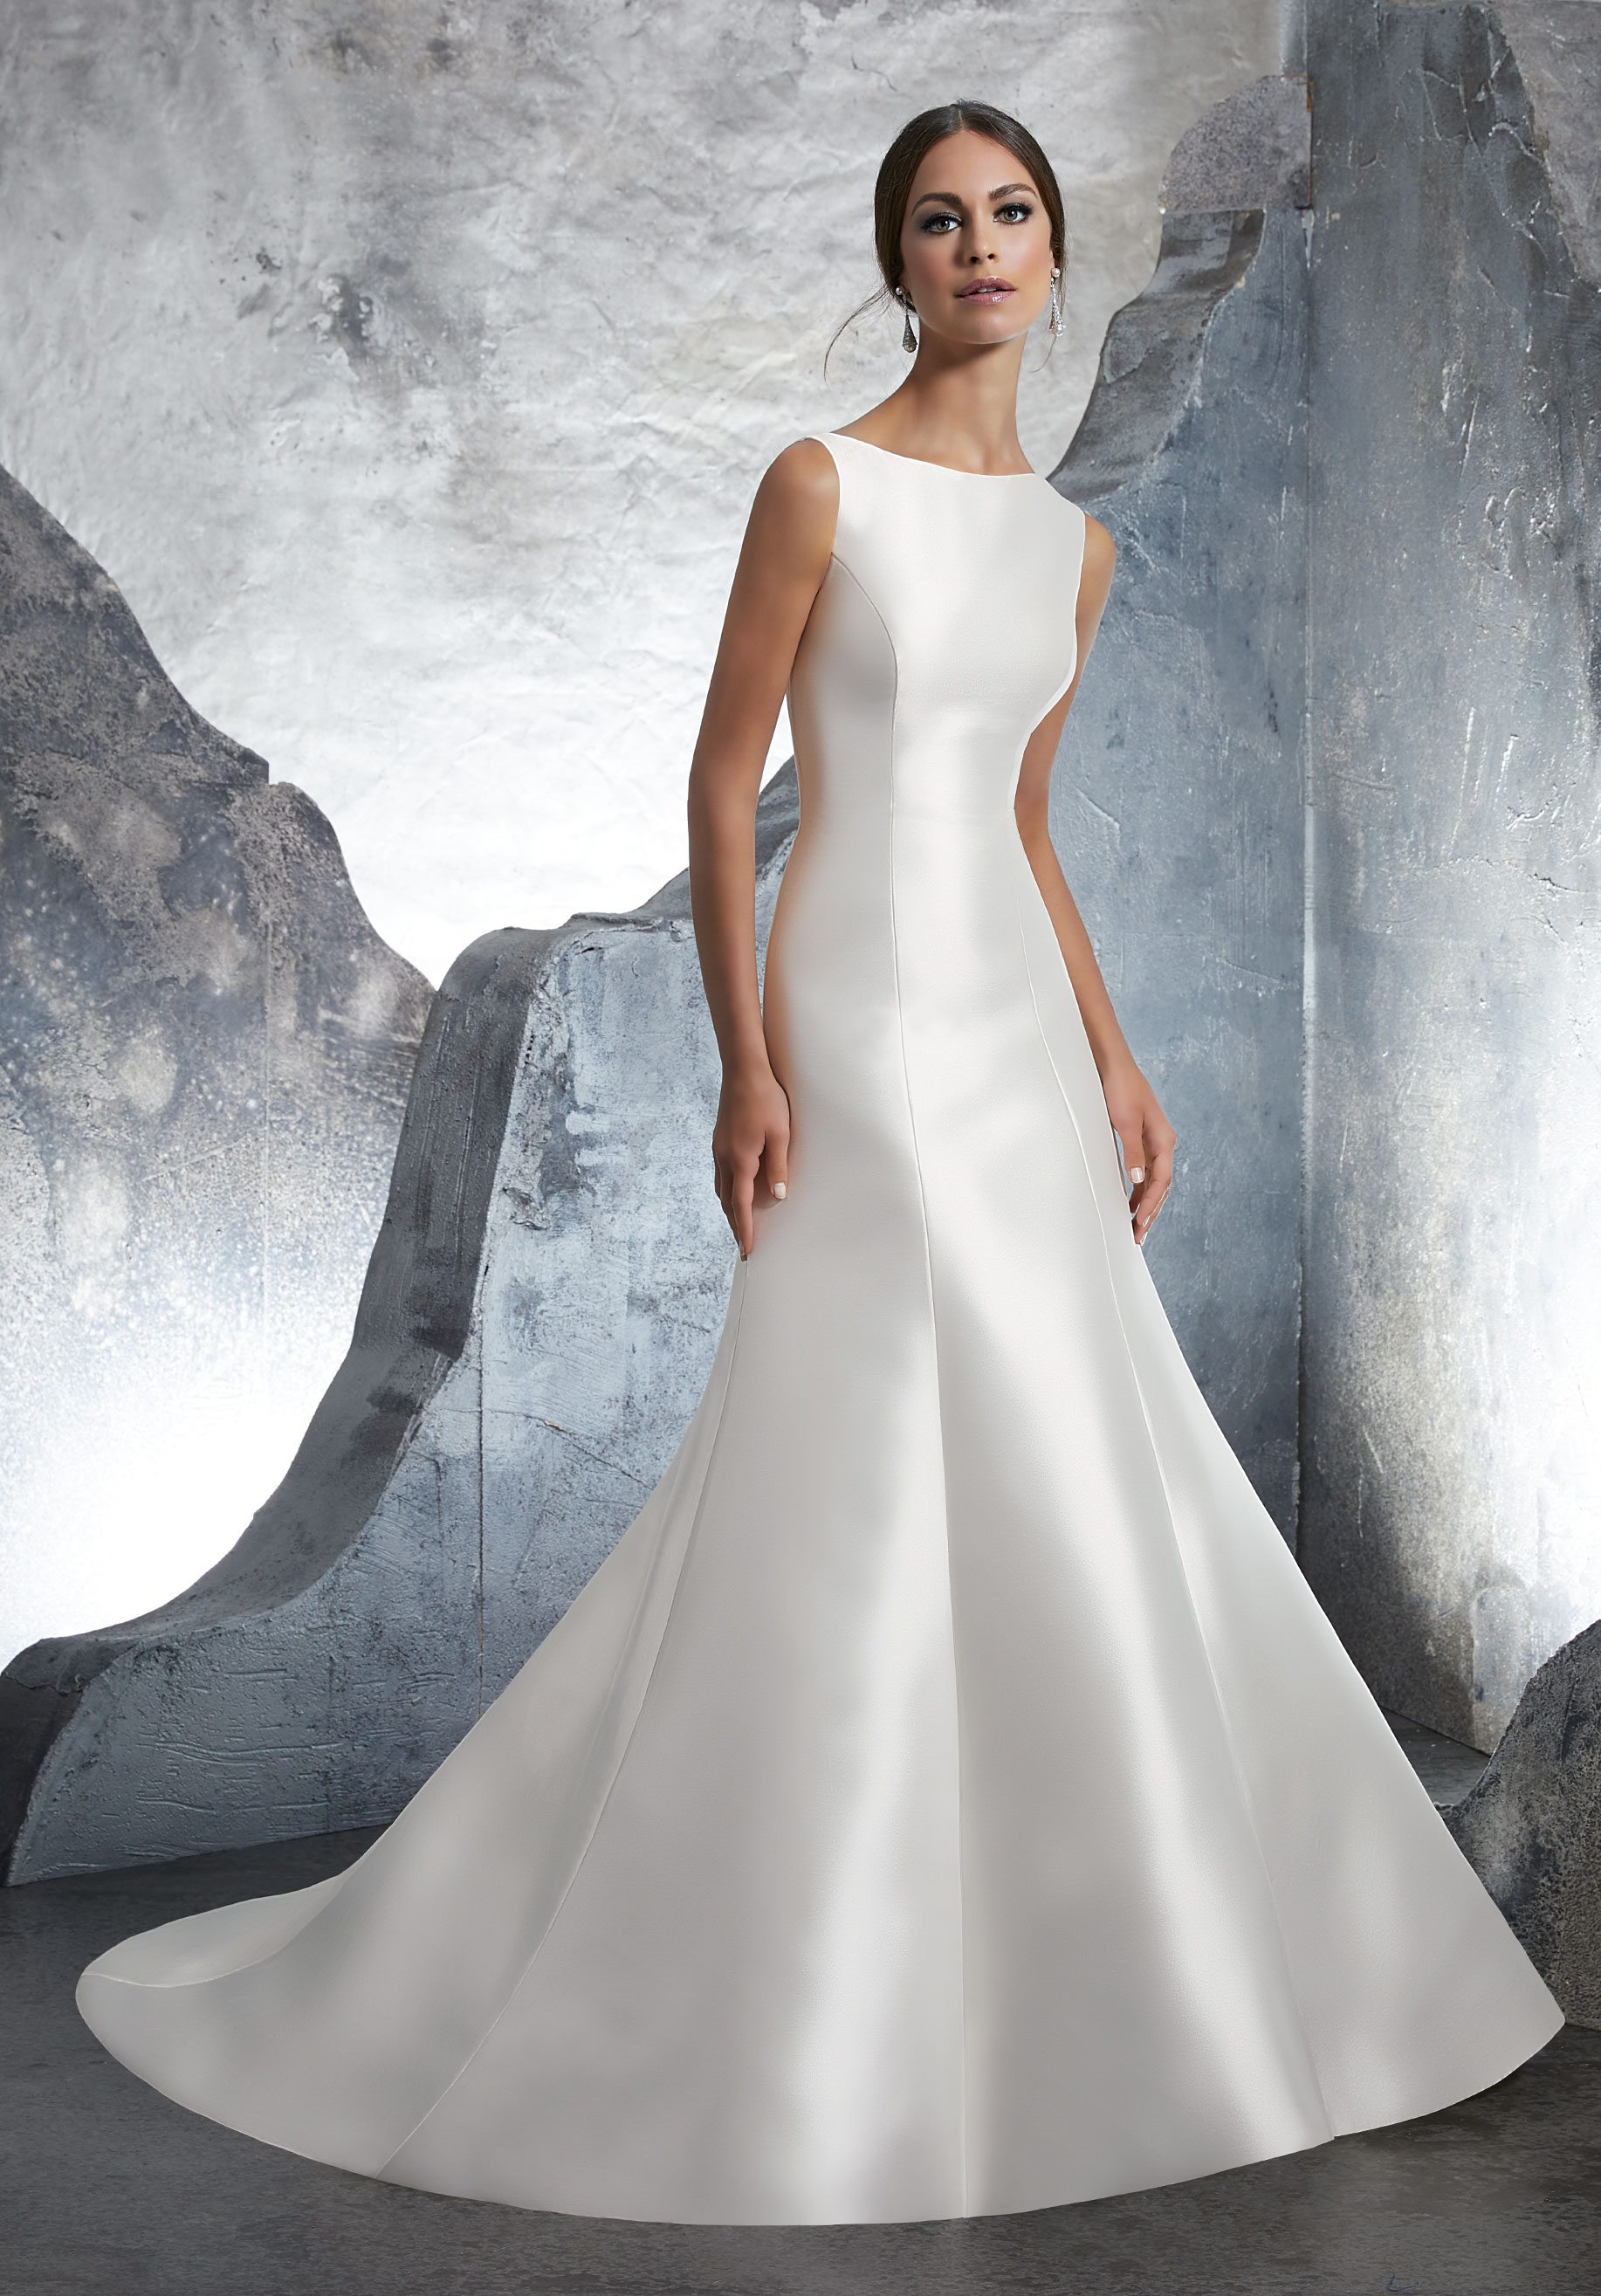 Mori Lee 5603 Ivory // Retail Price $1079 | Our Price $755